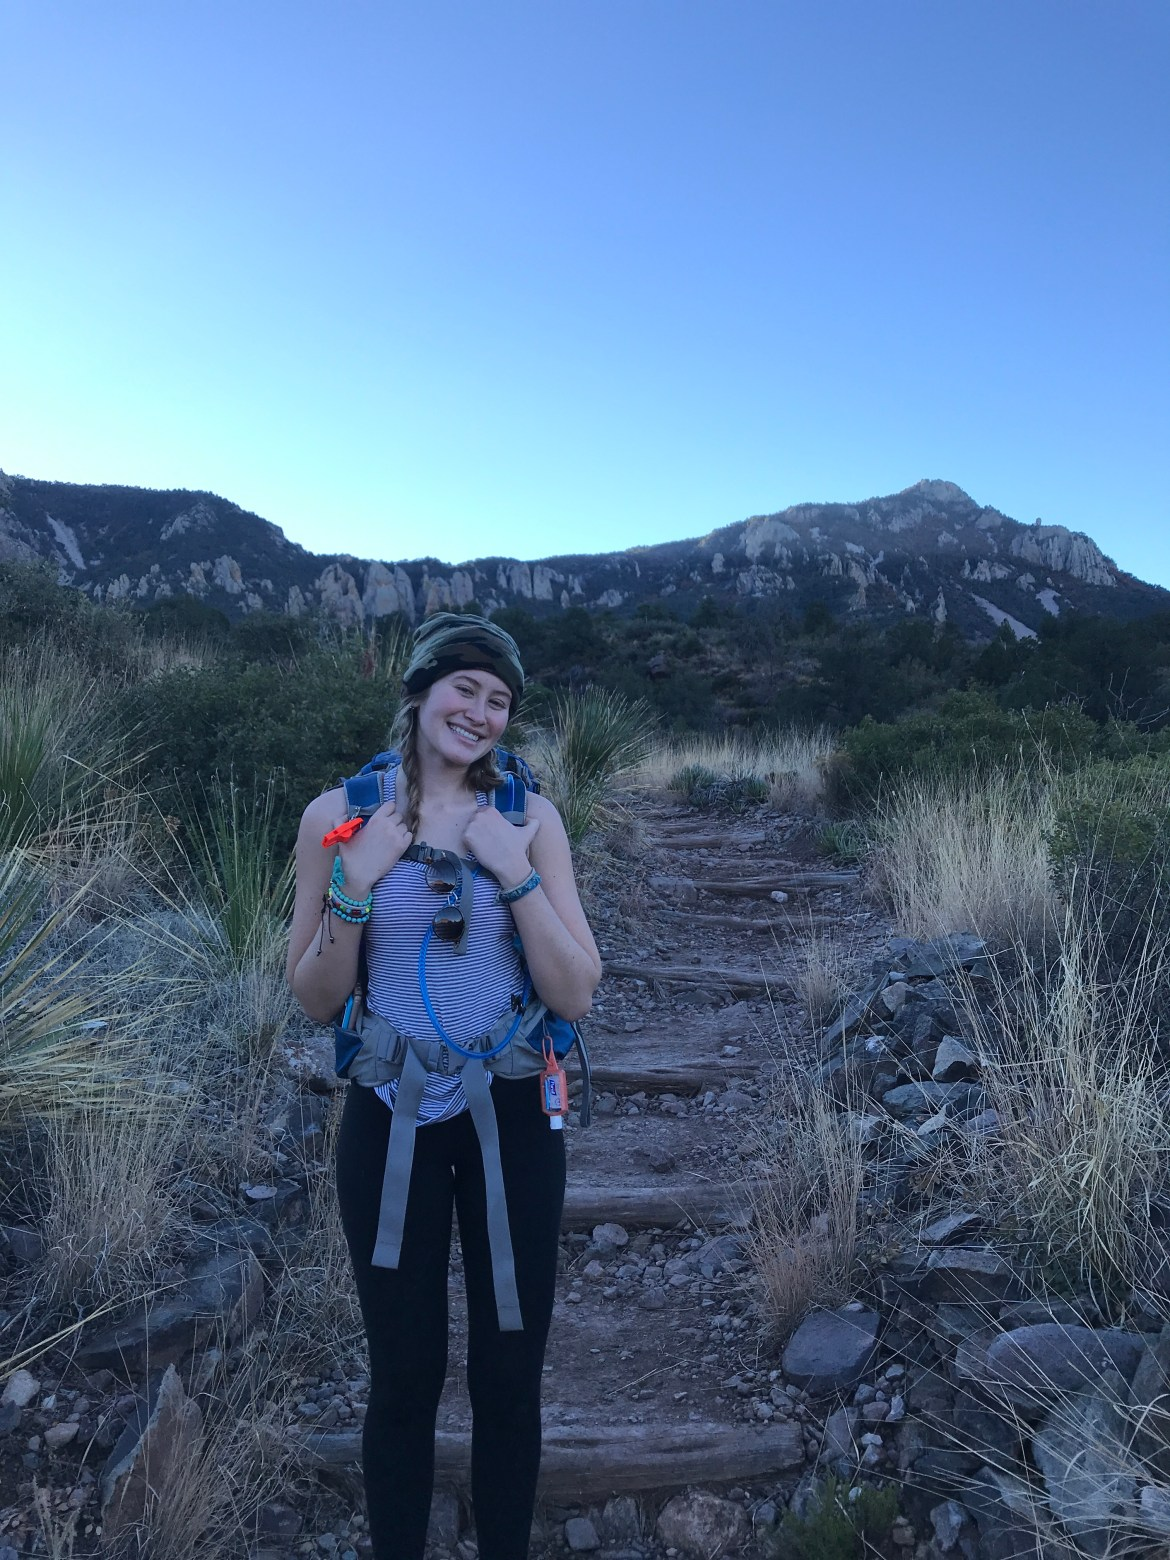 White blonde girl standing at the start of a trail with mountains in background